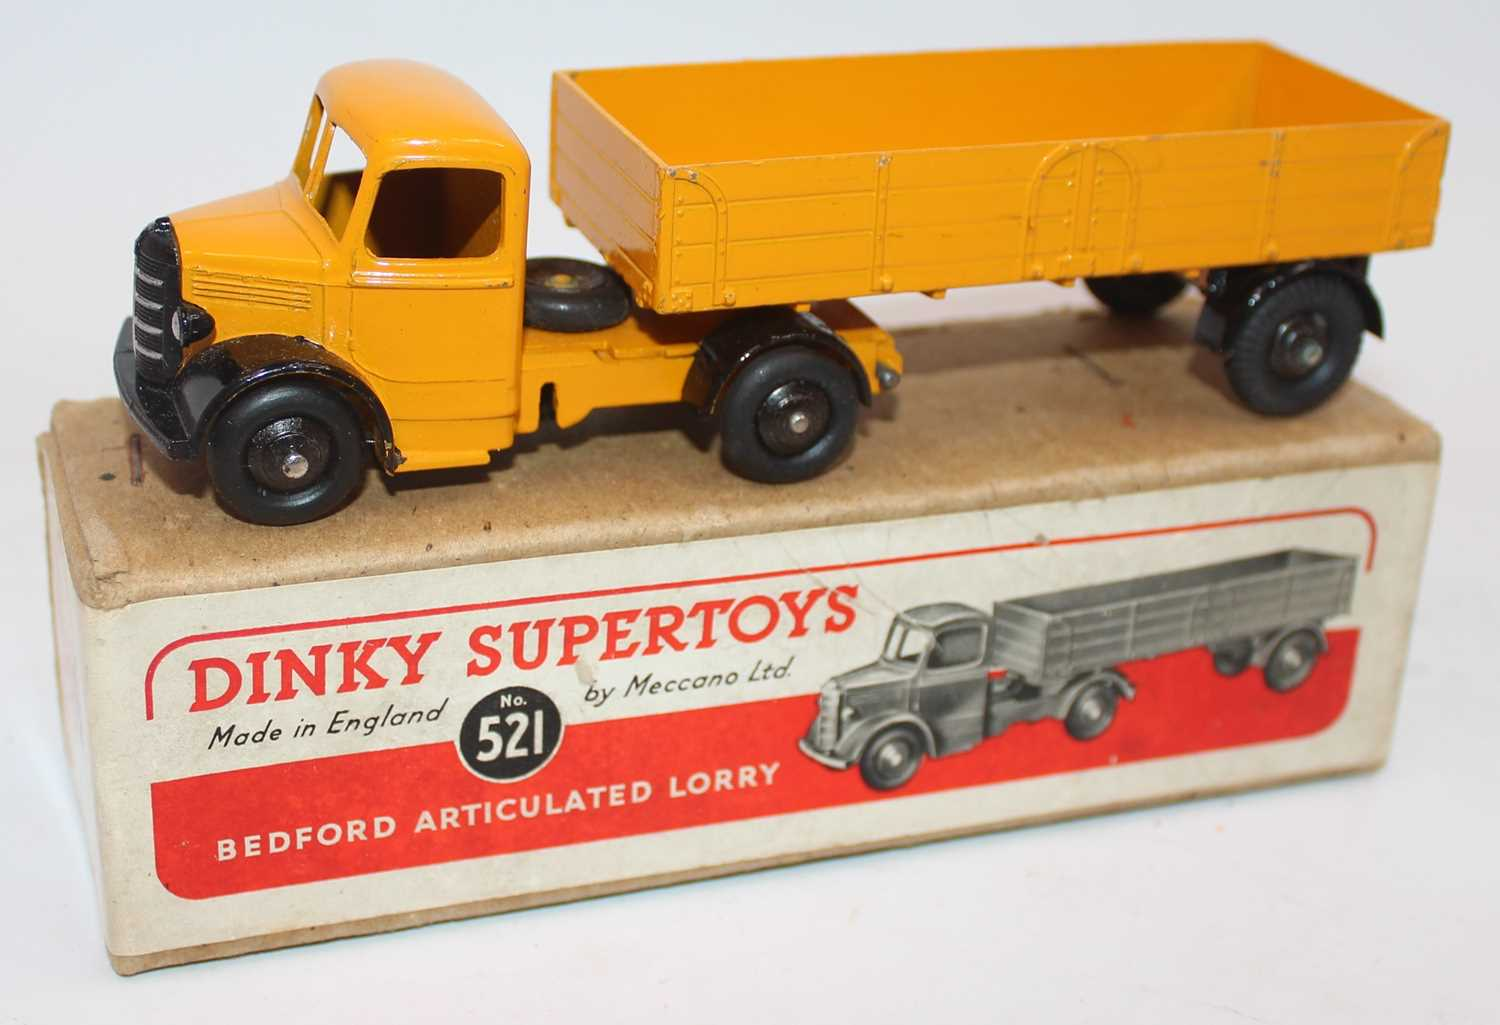 Dinky Toys No.521 Bedford articulated lorry with yellow cab and chassis with matching yellow